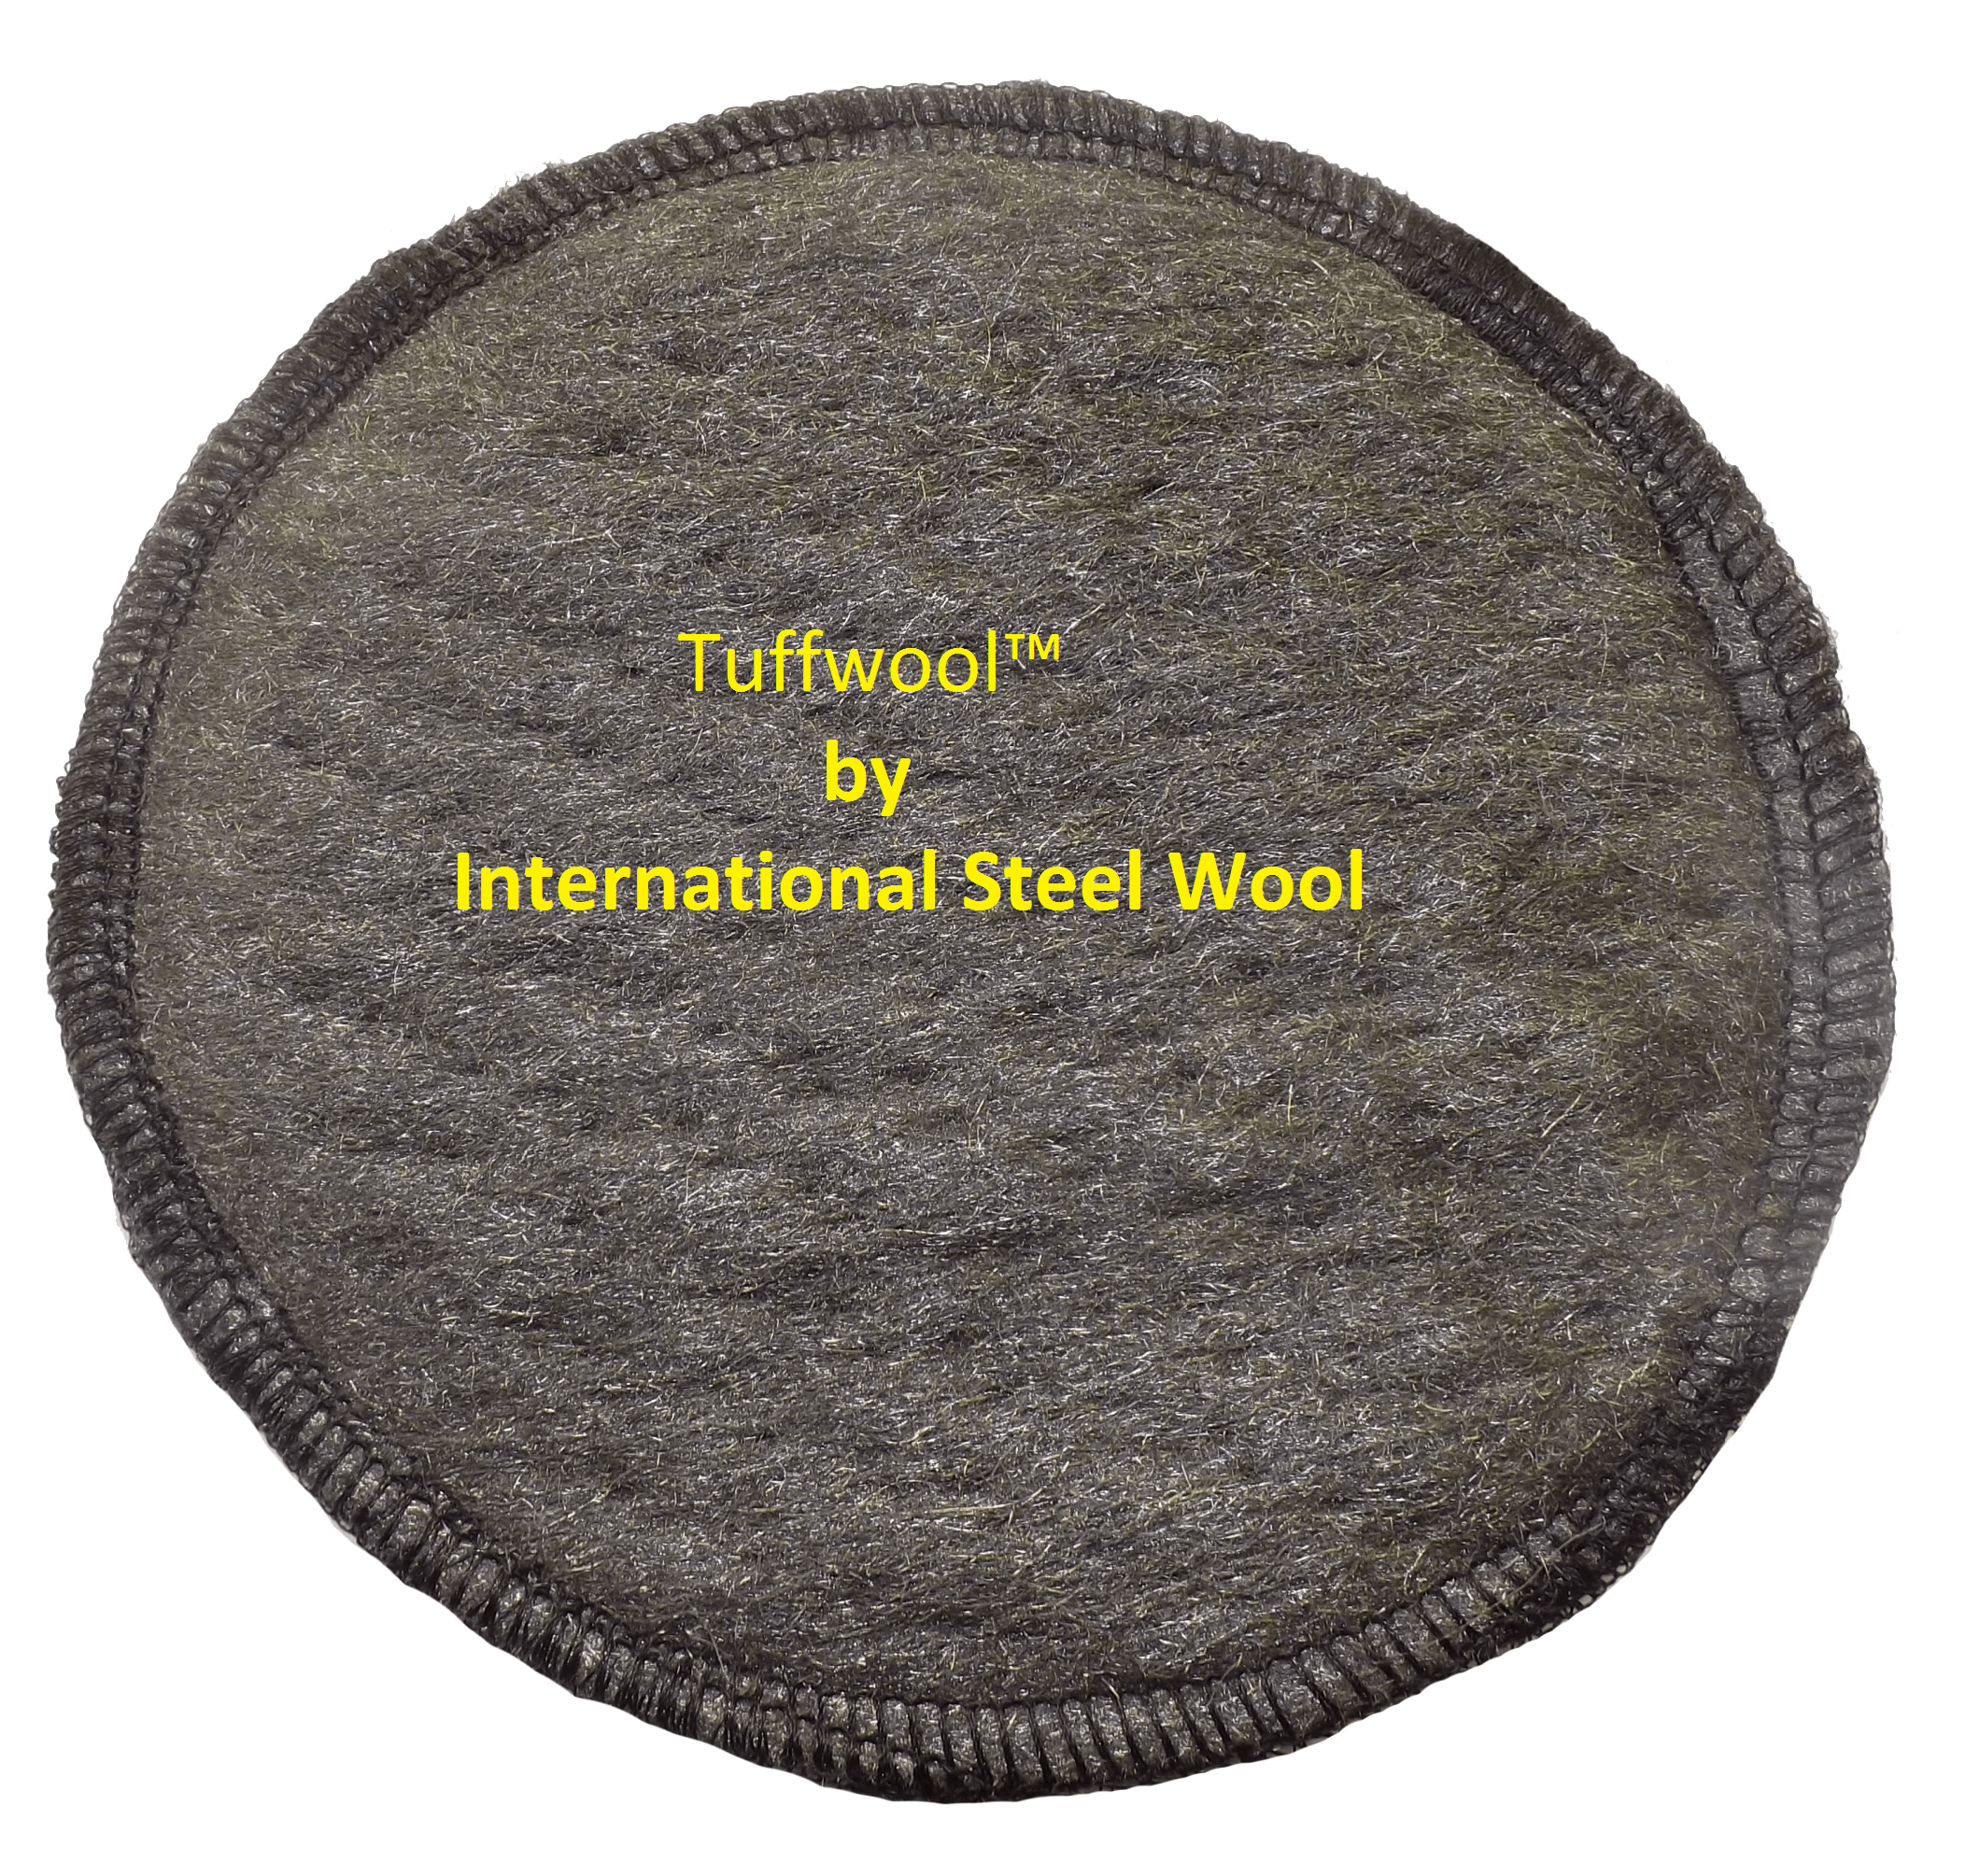 Tuffwool Steel Wool Polishing Pads